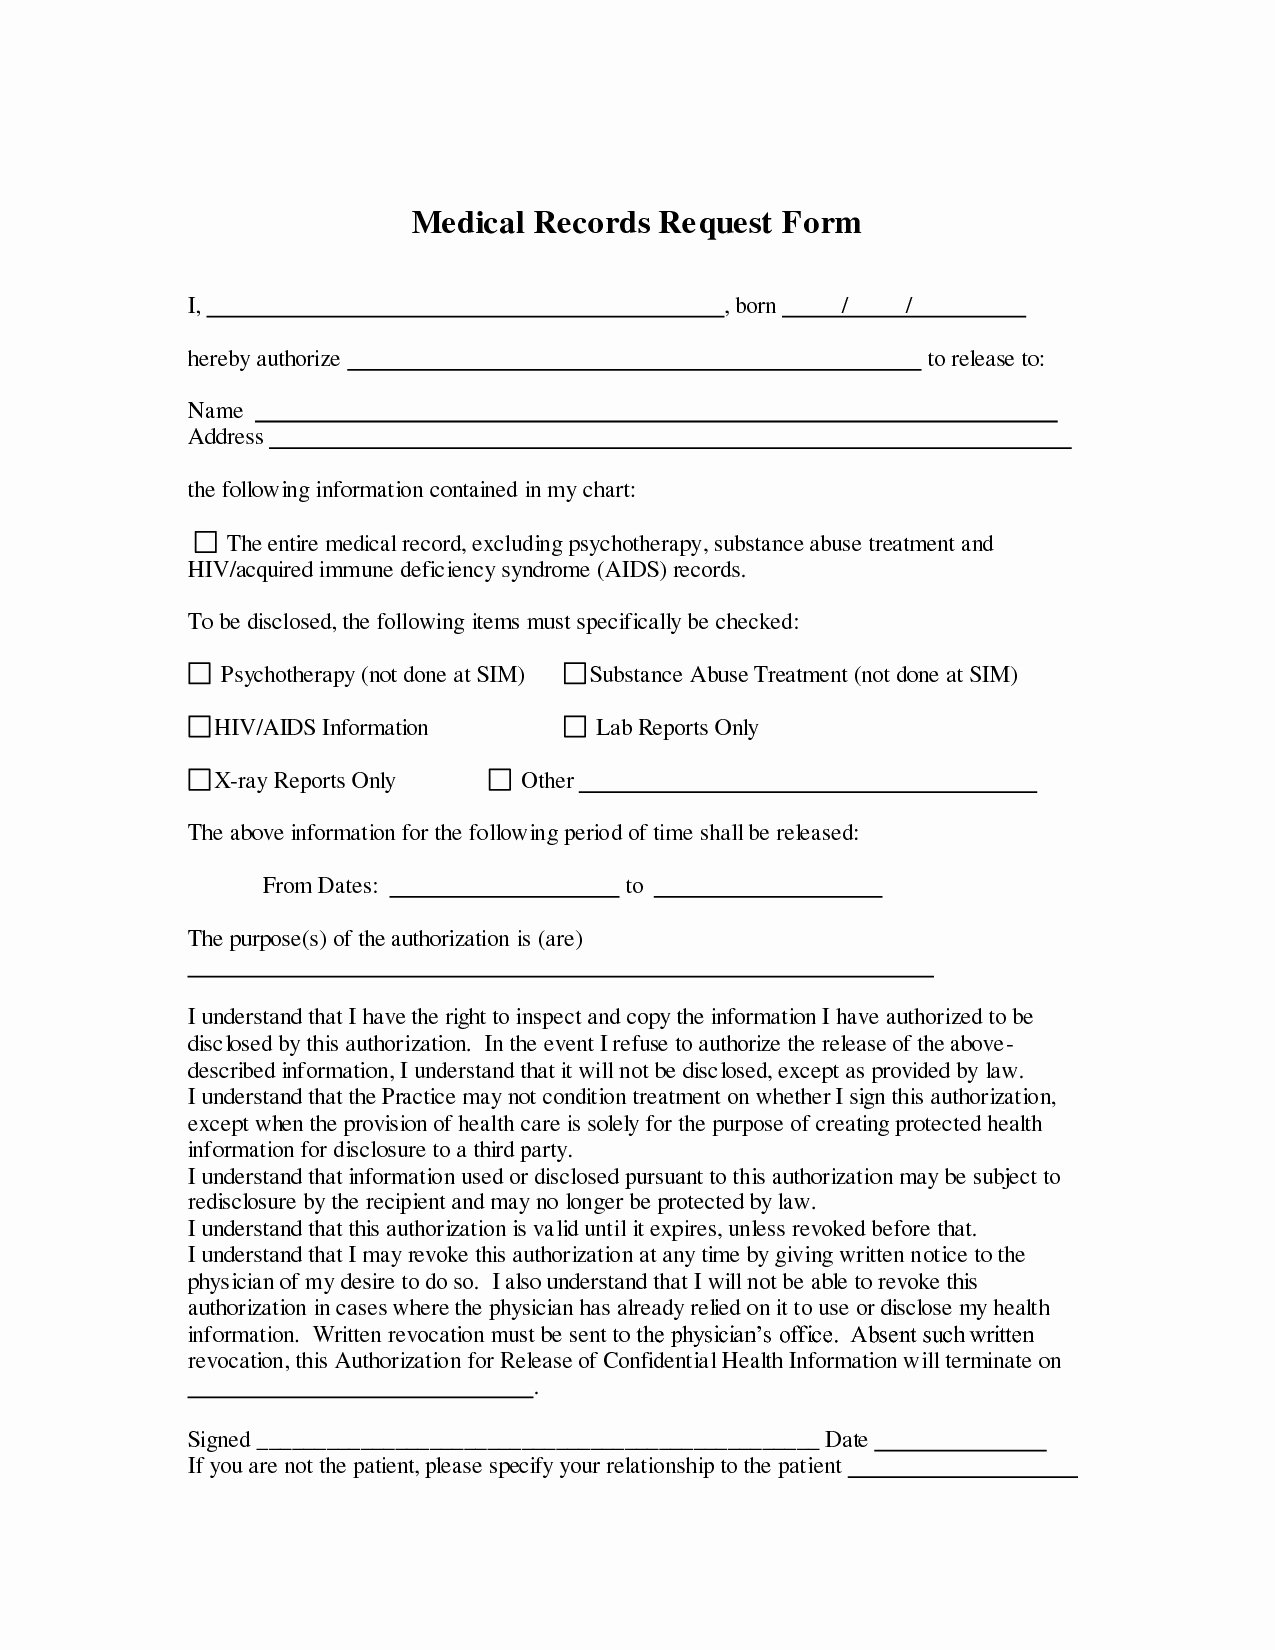 Medical Records Request form Template Luxury Request for Medical Records form Template – formocks